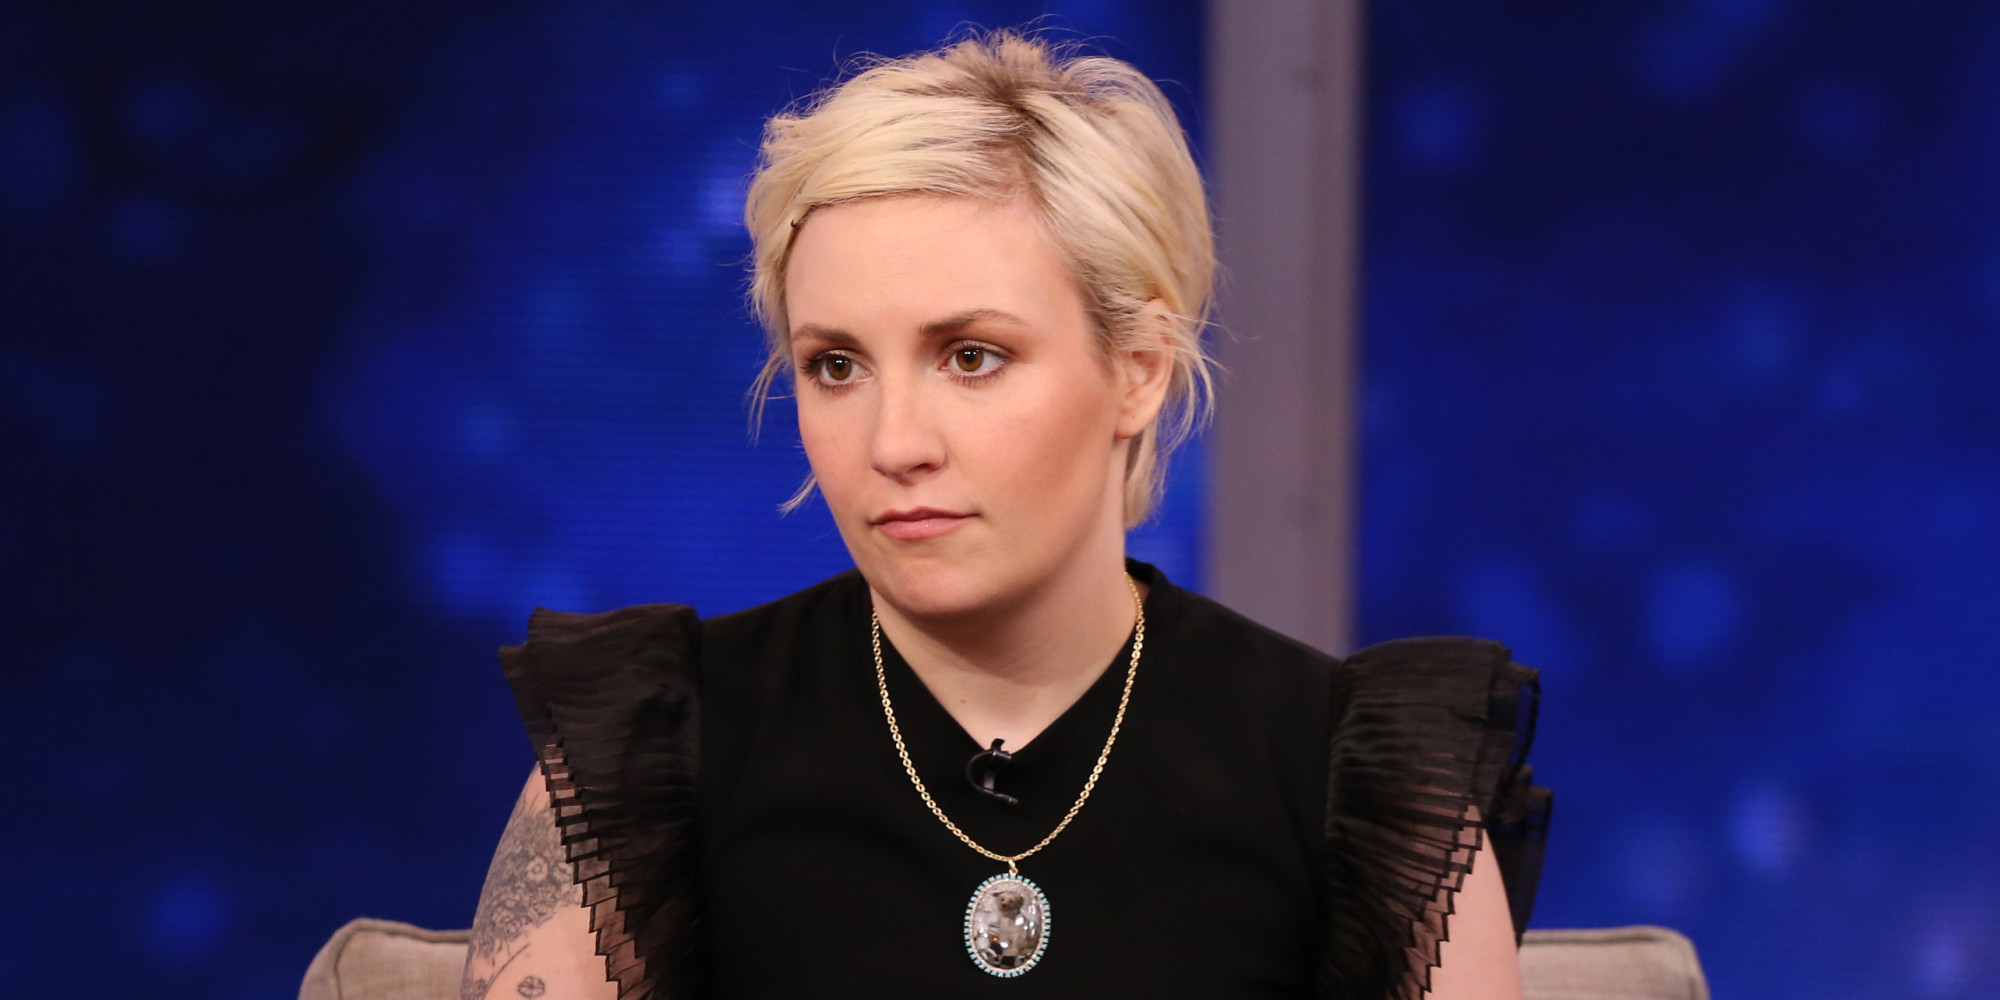 Lena Dunham spoke about her experience at Planned Parenthood (Picture: ABC via Getty Images)